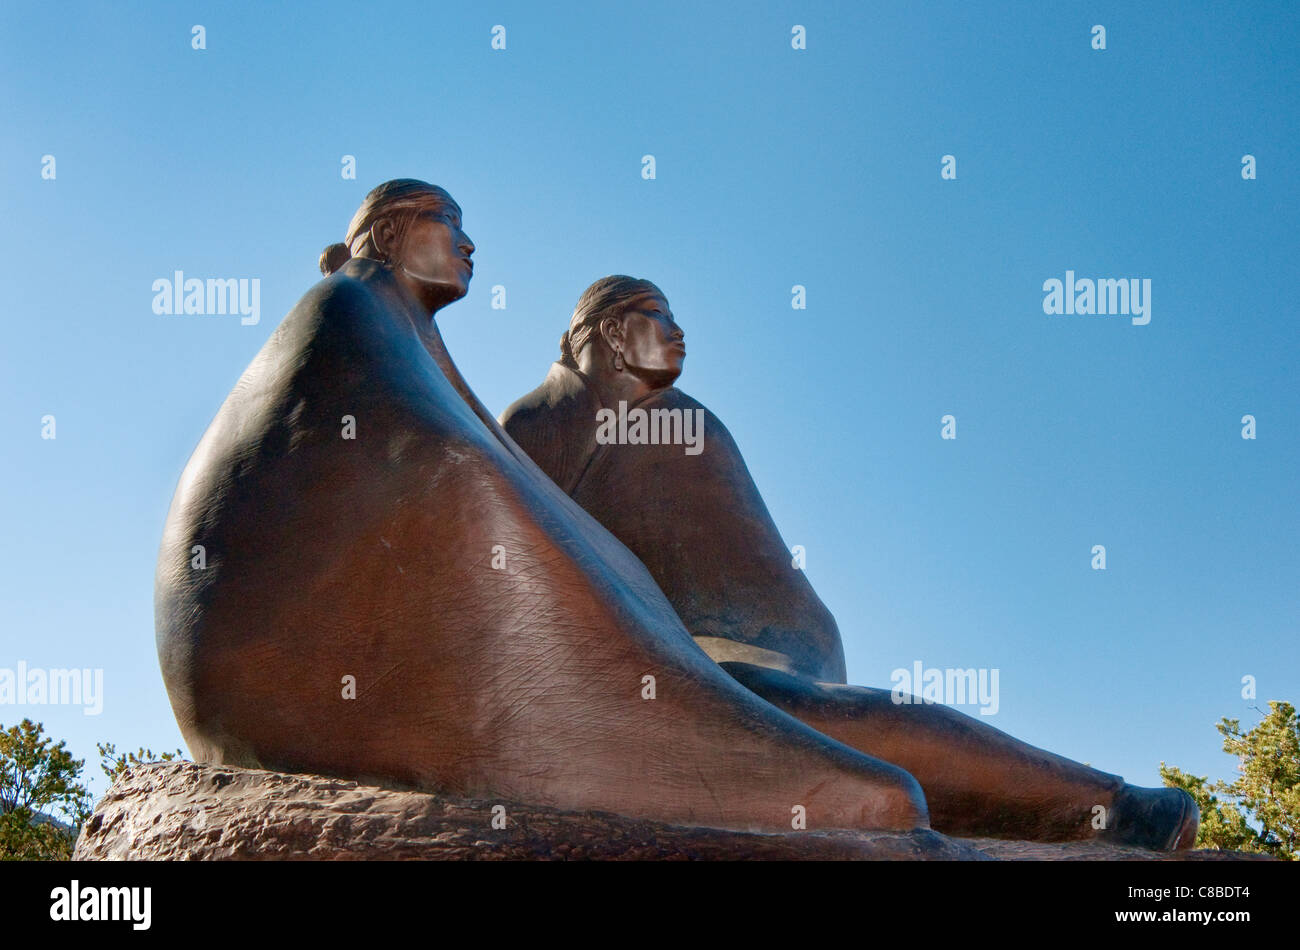 Dineh, bronze sculpture by Allan Houser, Wheelwright Museum of the American Indian, Museum Hill, Santa Fe, New Mexico, - Stock Image